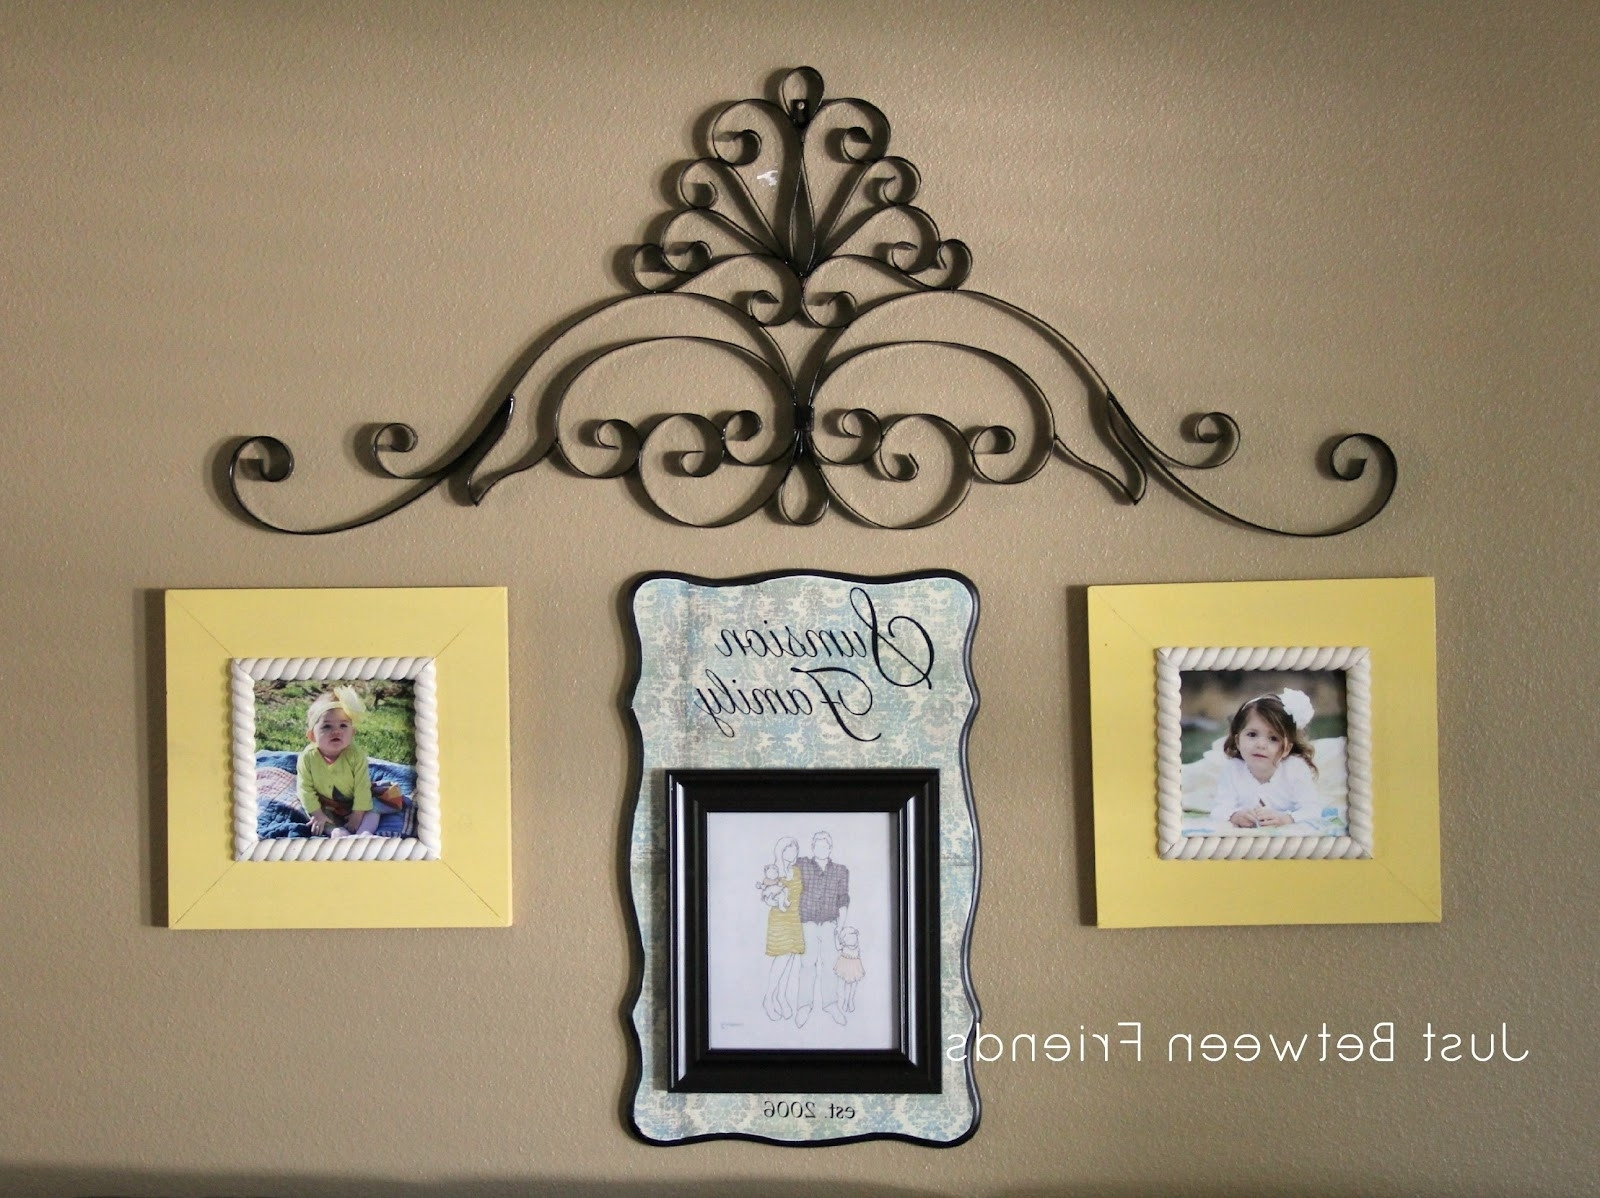 Newest Fantastic Metal Wall Decor Hobby Lobby Frieze Wall Painting Ideas In Hobby Lobby Metal Wall Art (View 14 of 15)